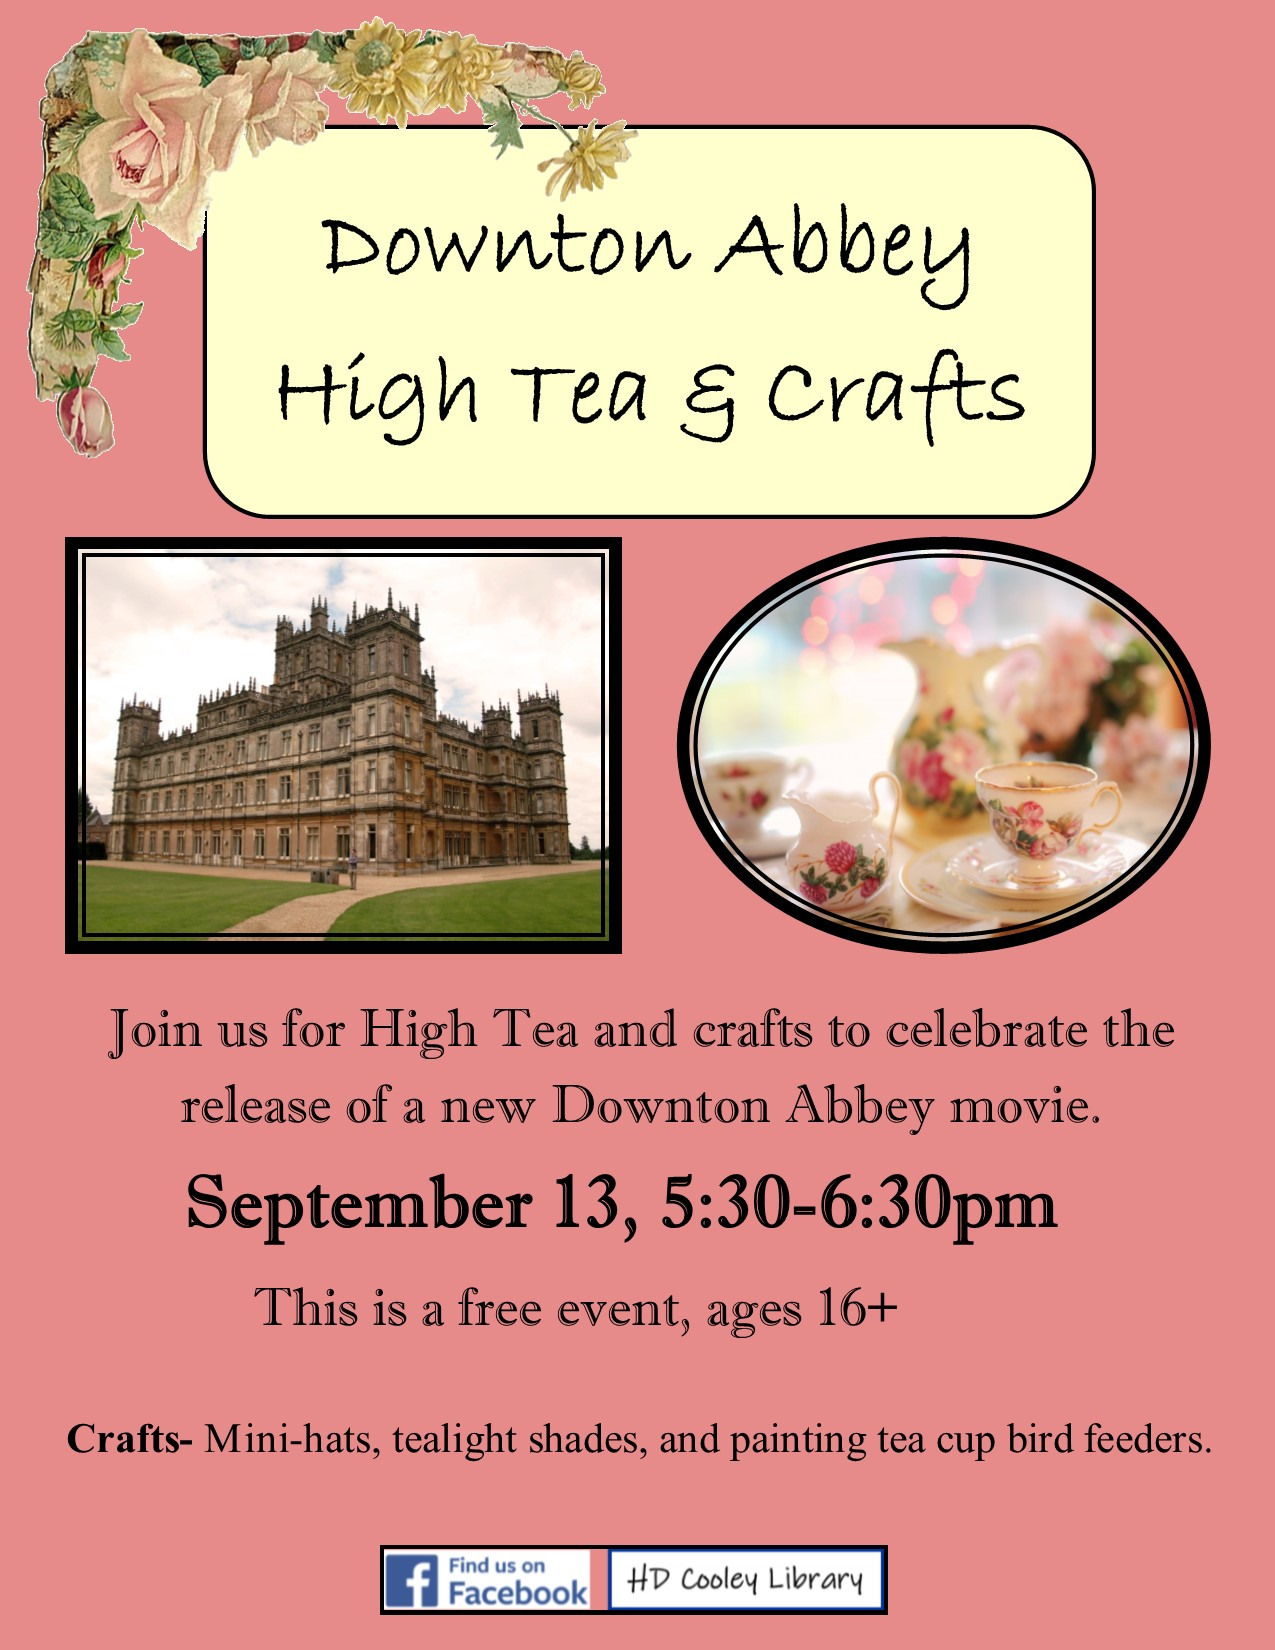 Downton Abbey Tea date and time